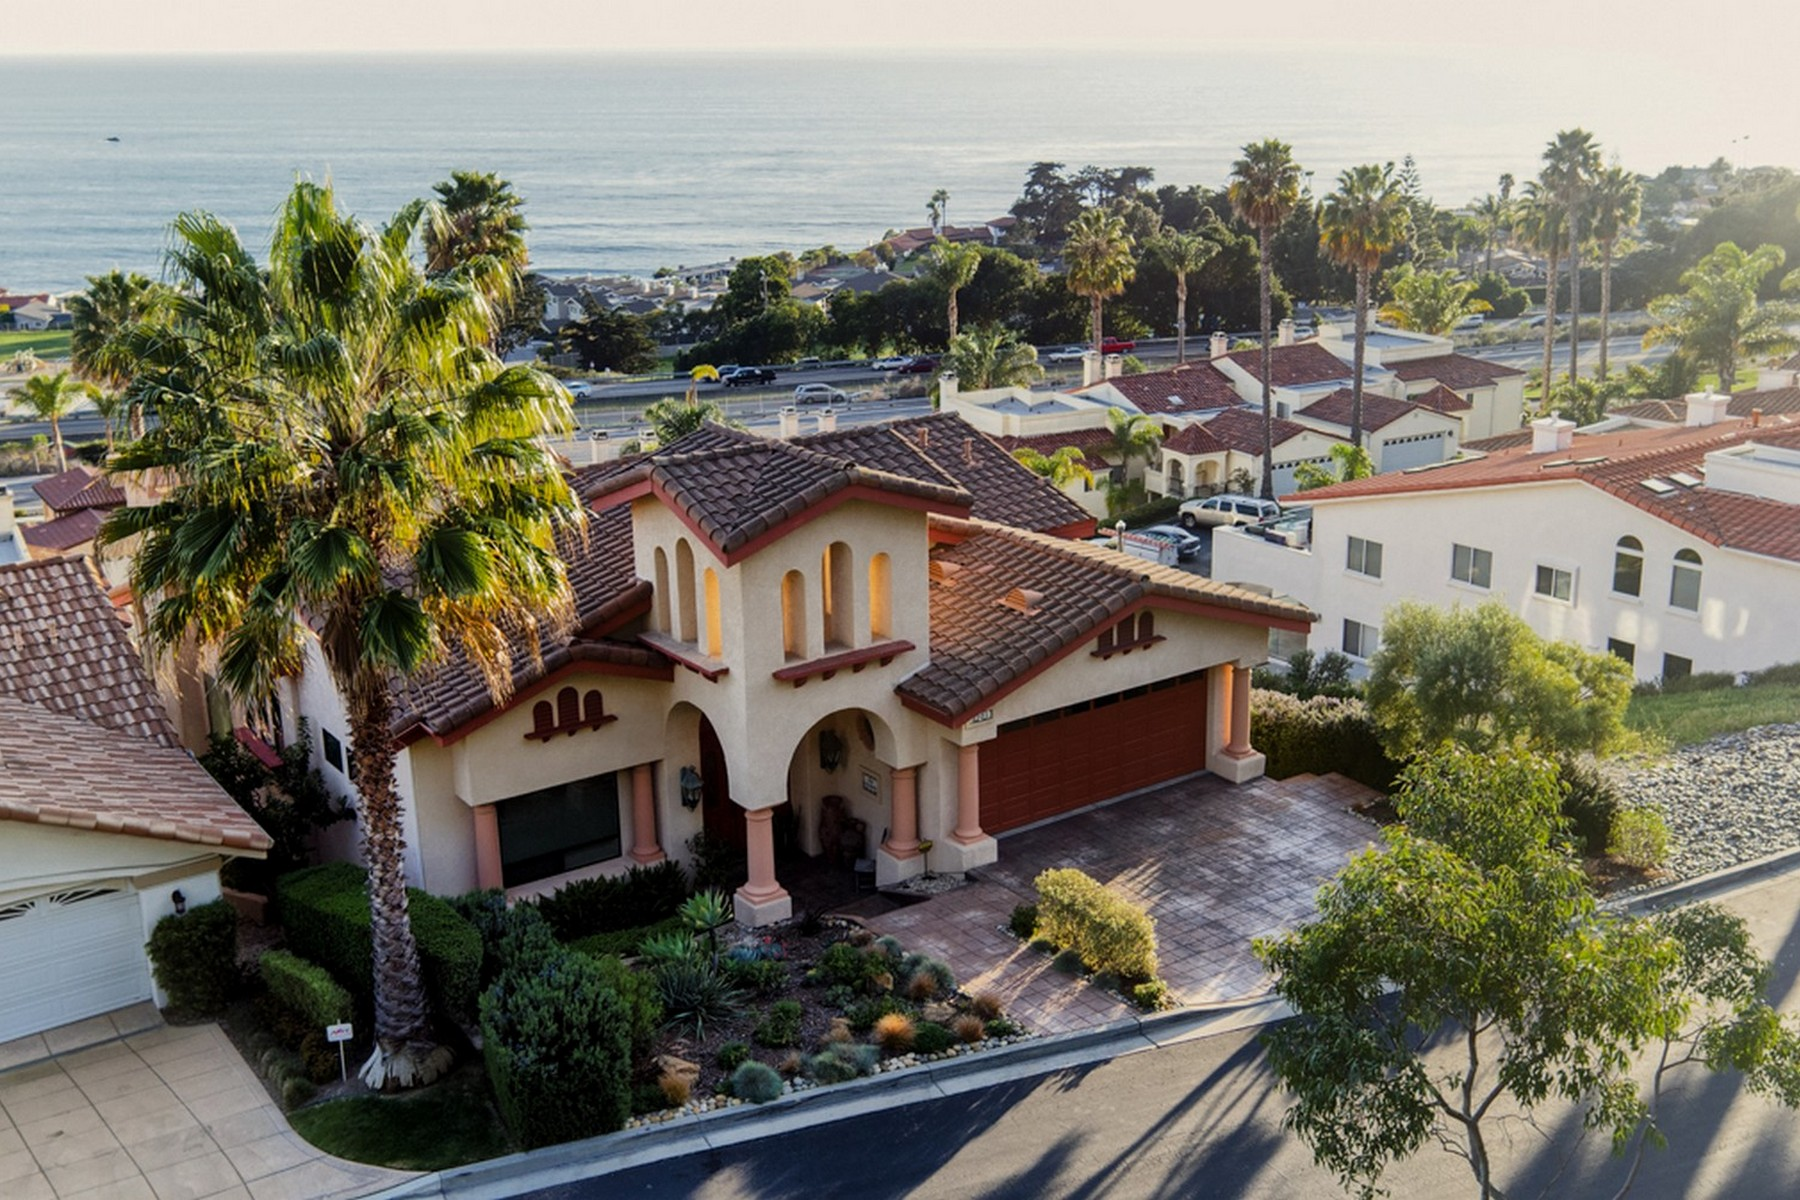 Single Family Home for Sale at Ocean View Spanish-Style Home 2101 Costa Brava Way Pismo Beach, California 93449 United States